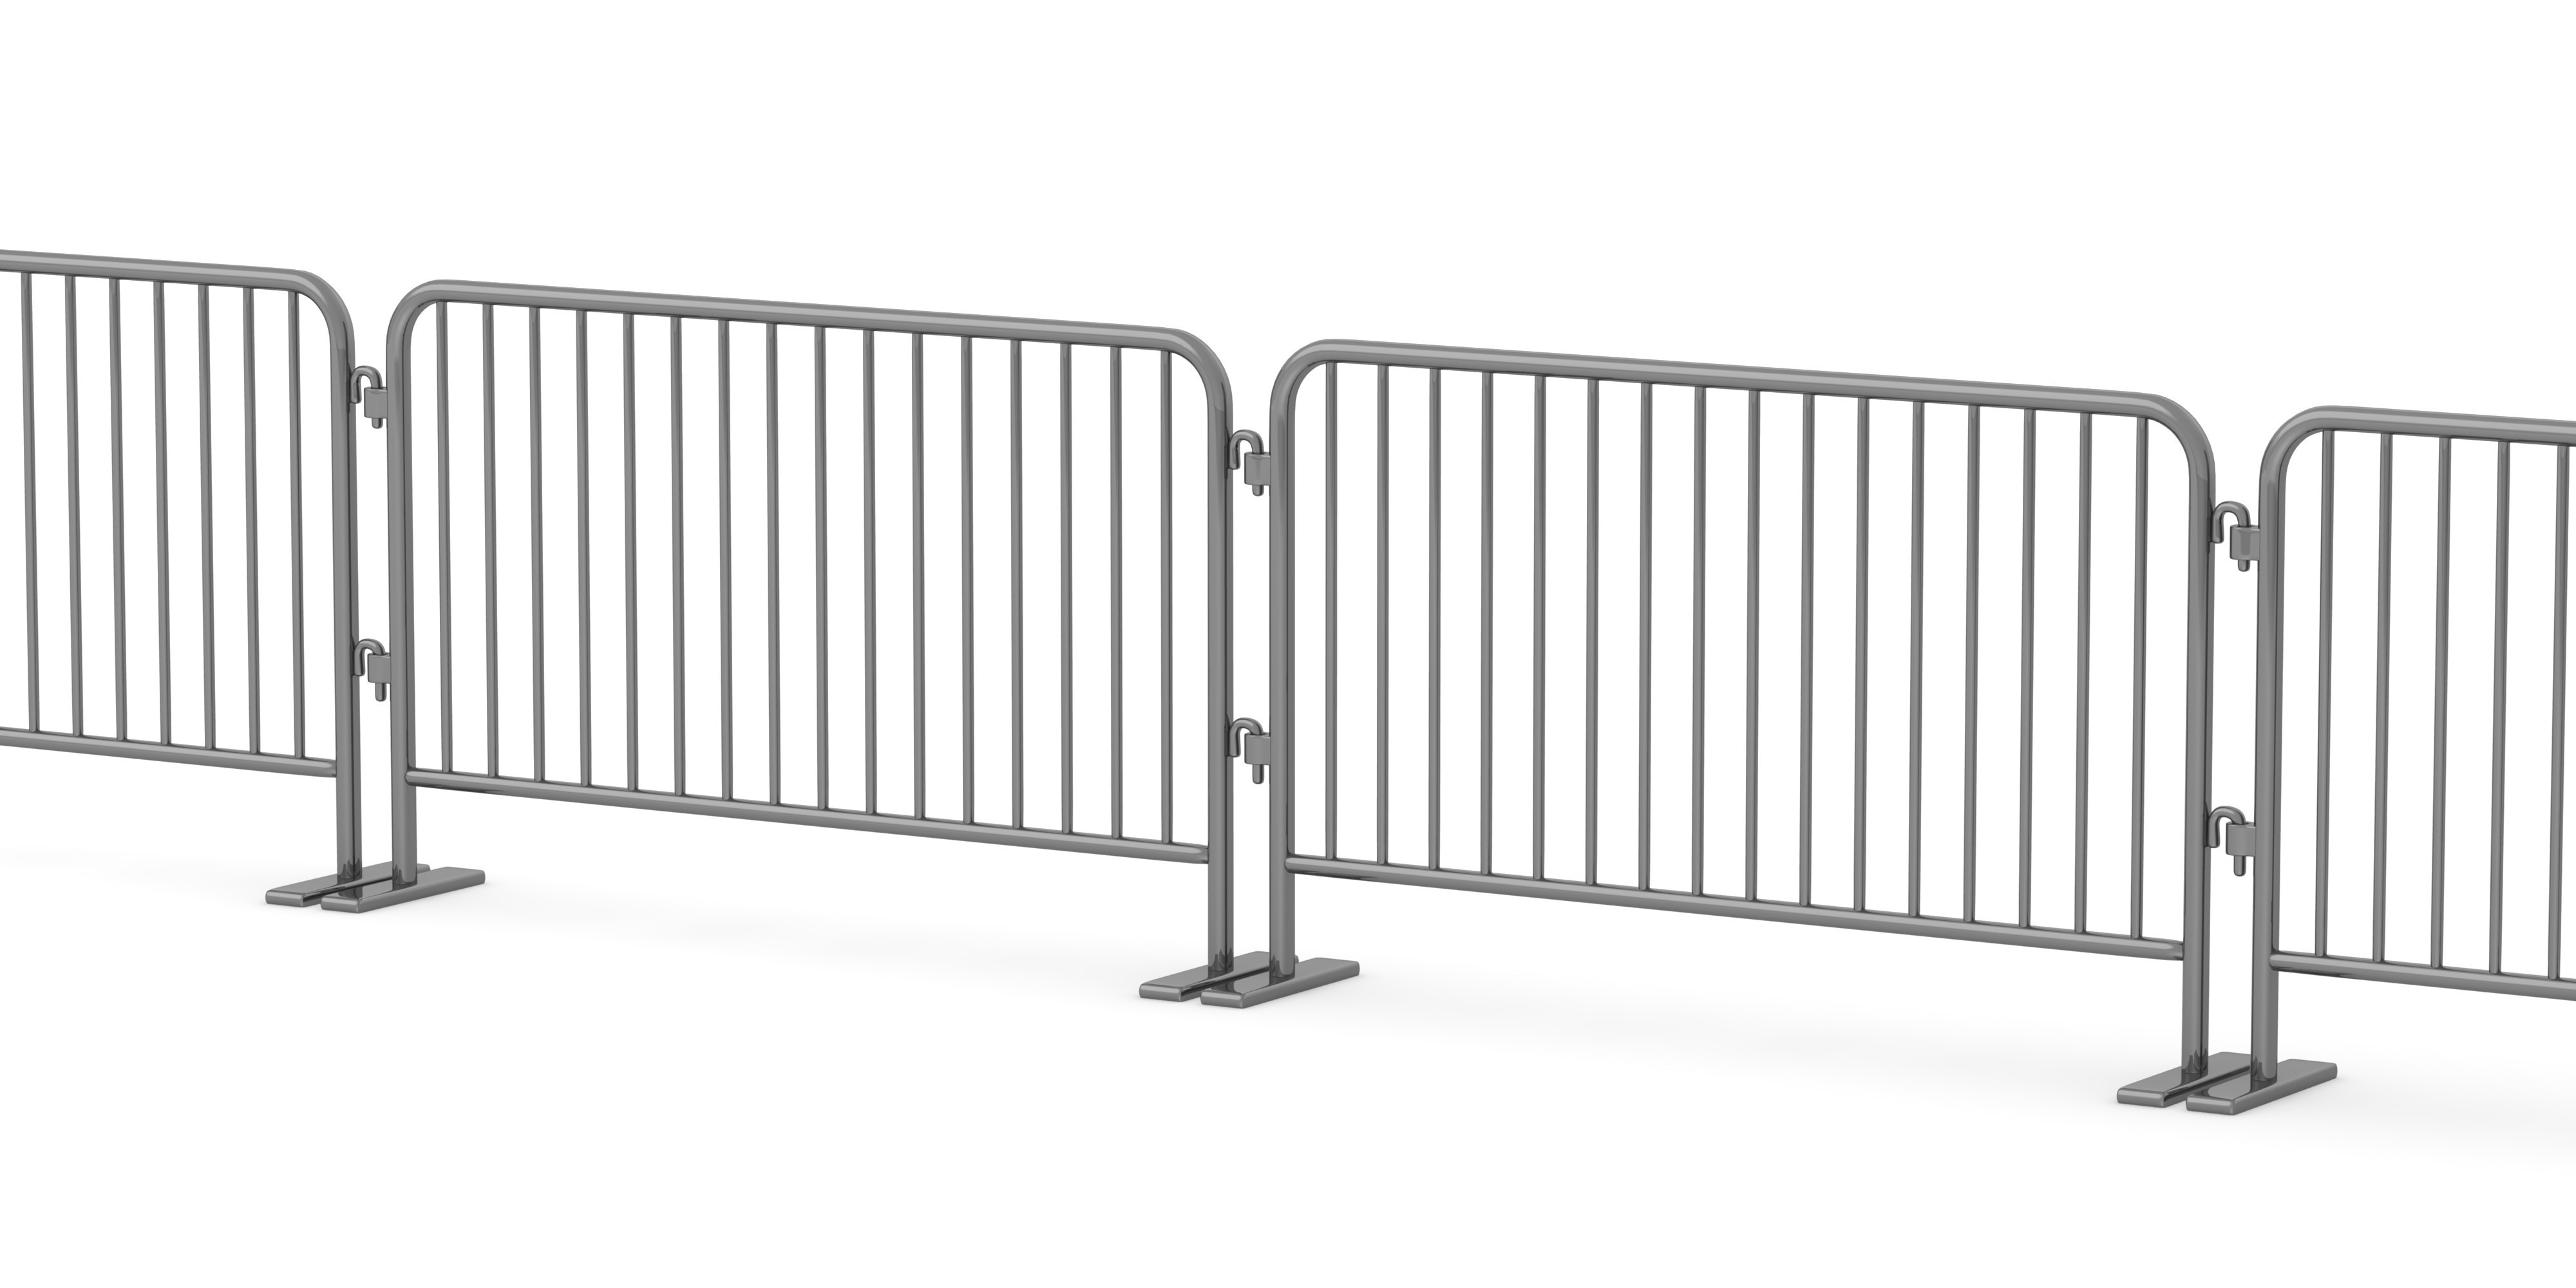 Casel barrier